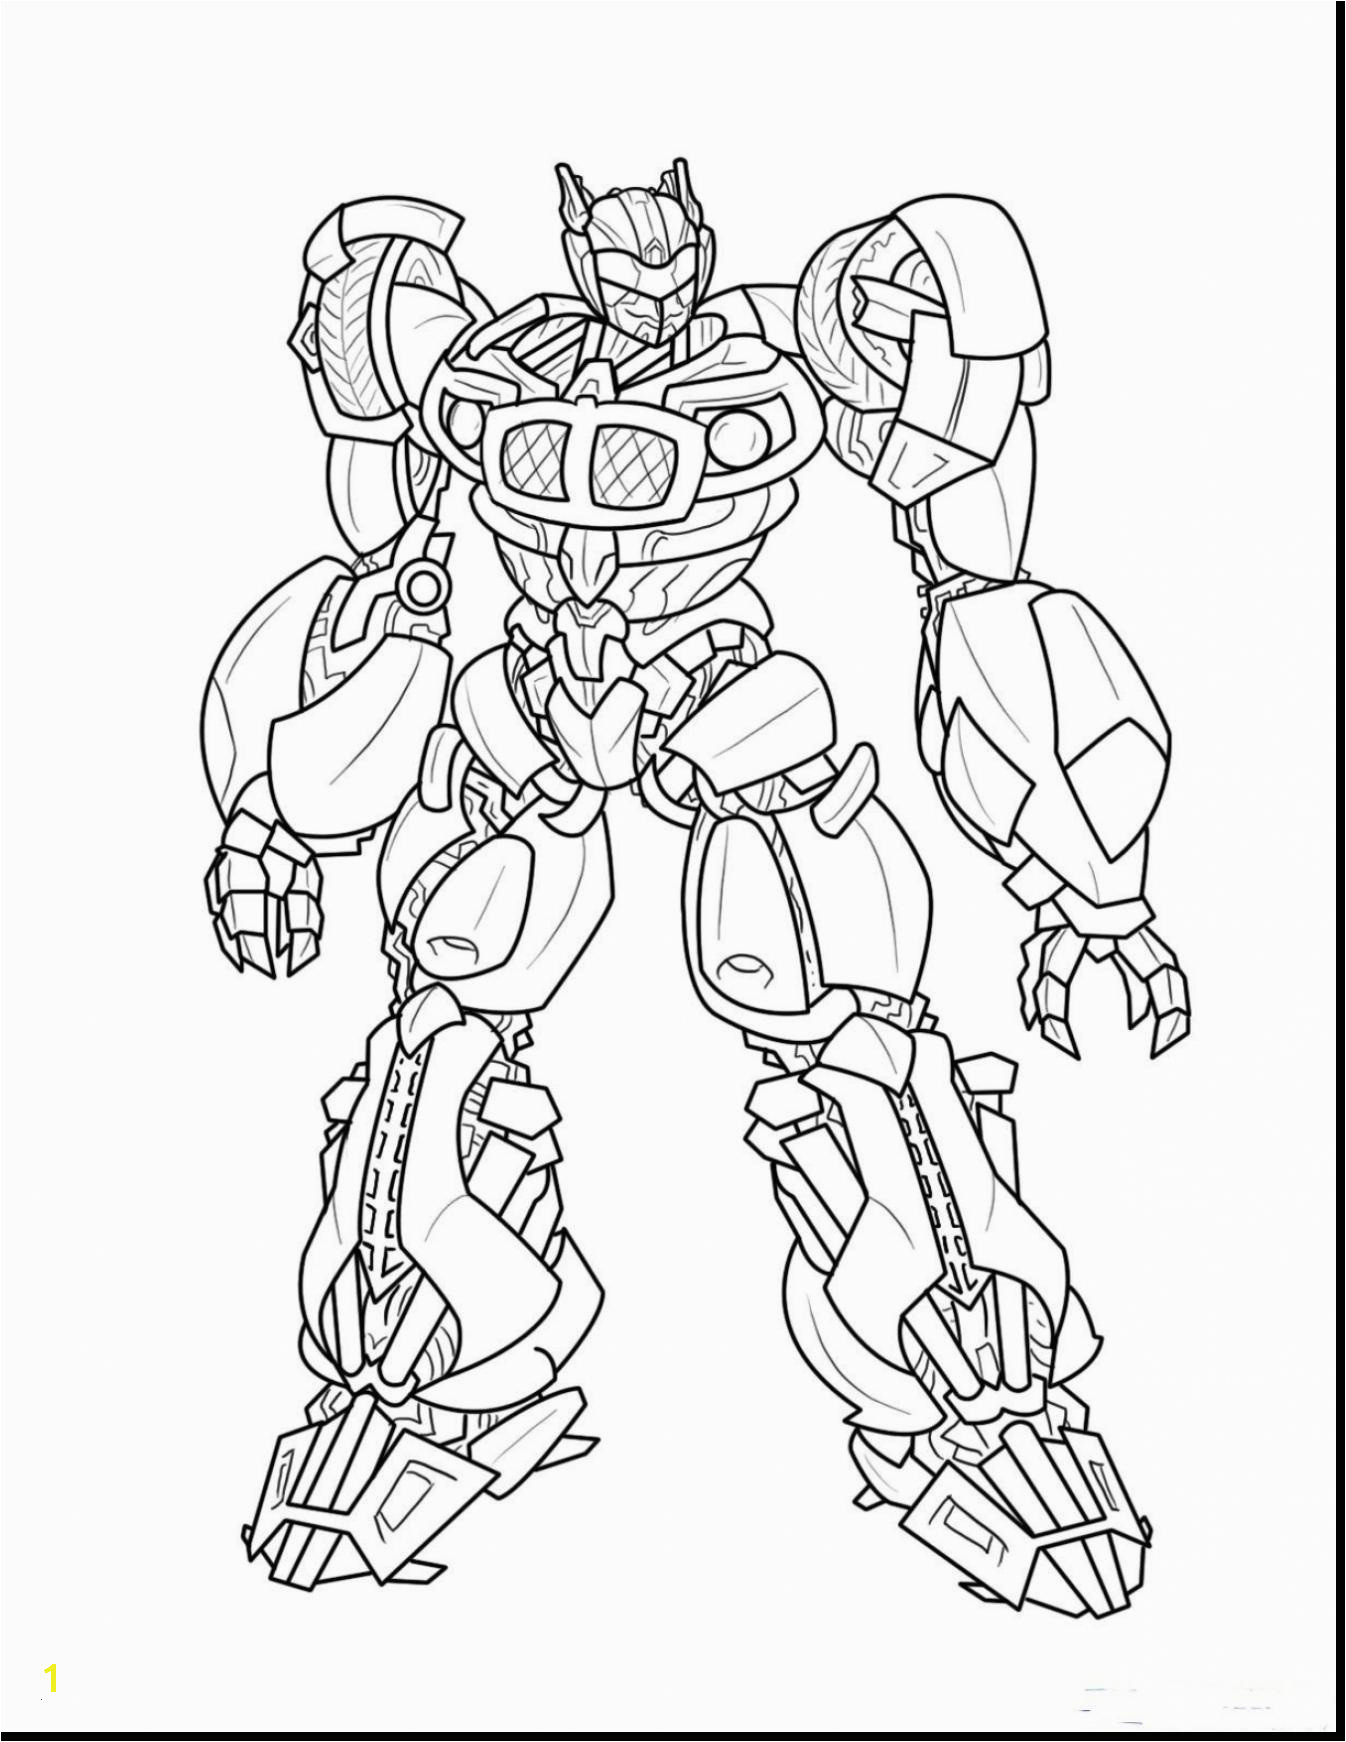 Transformer Coloring Pages Transformers Coloring Pages to Print Amazing Bumblebee Transformer Coloring Pages Printable New